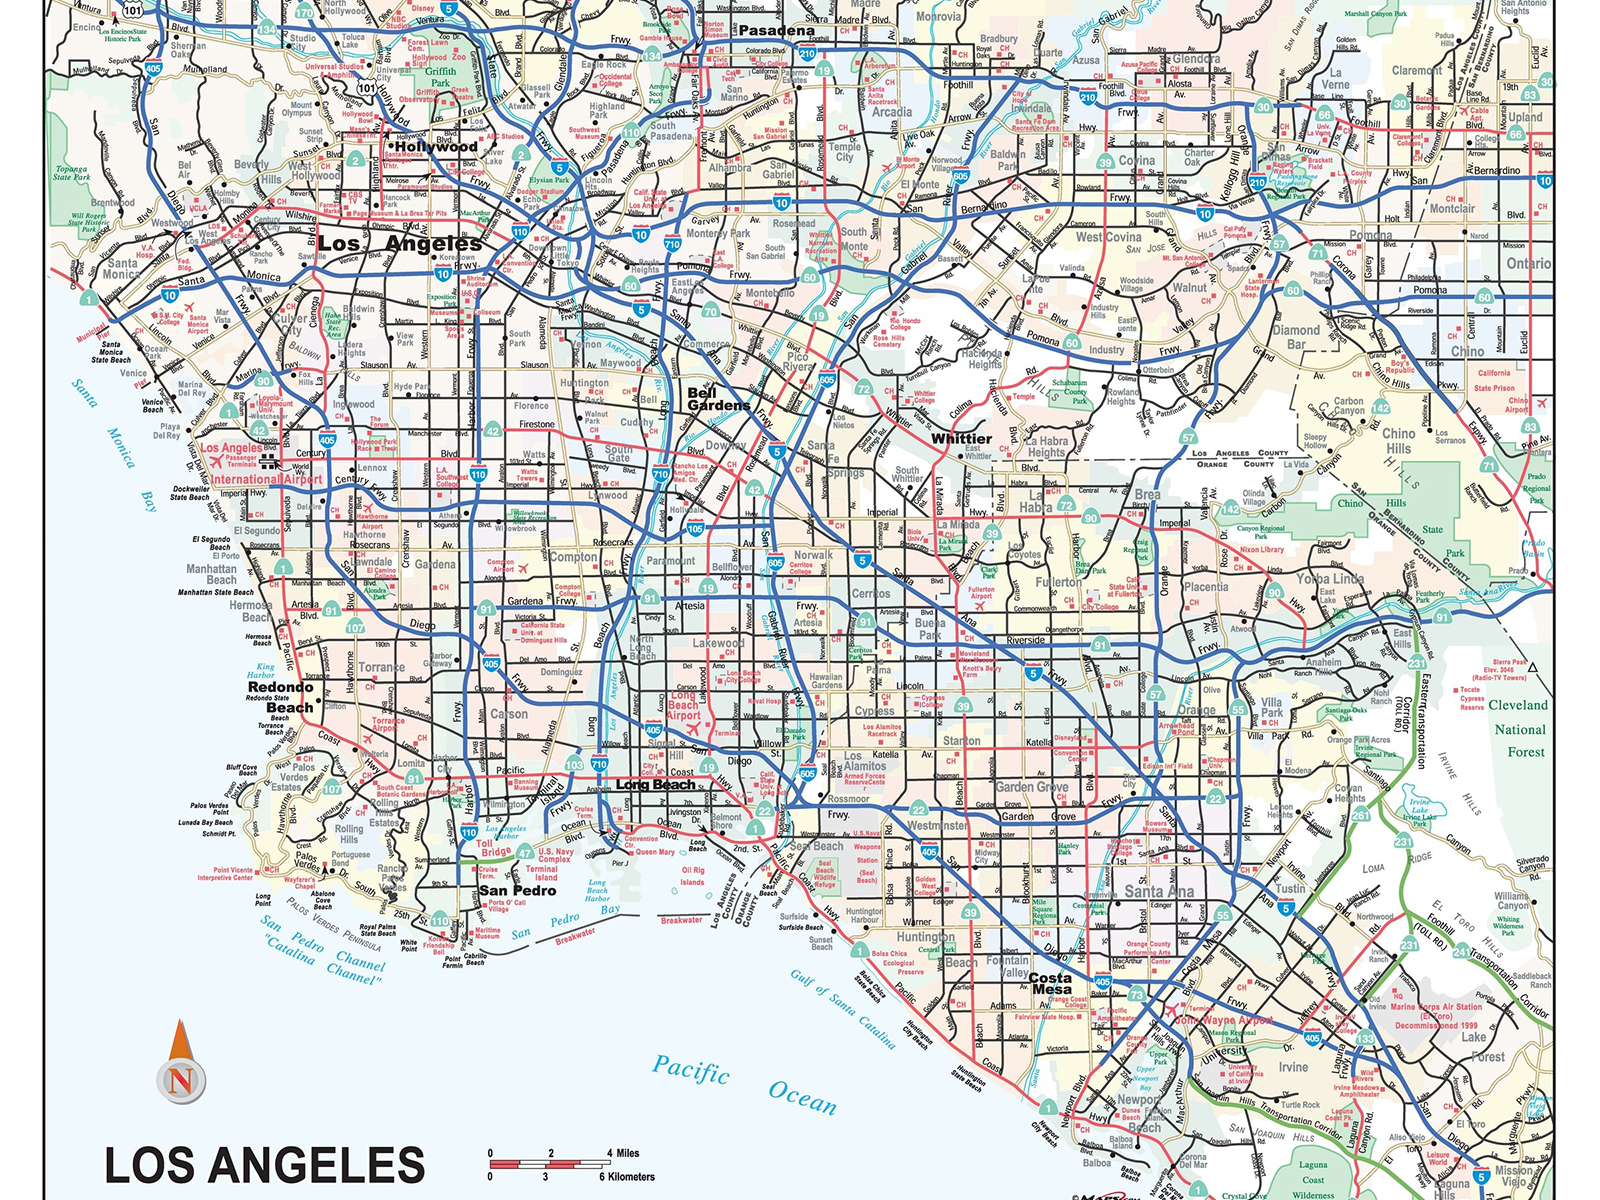 maps.com-los-angeles-city-and-metropolitan-area-wall-map